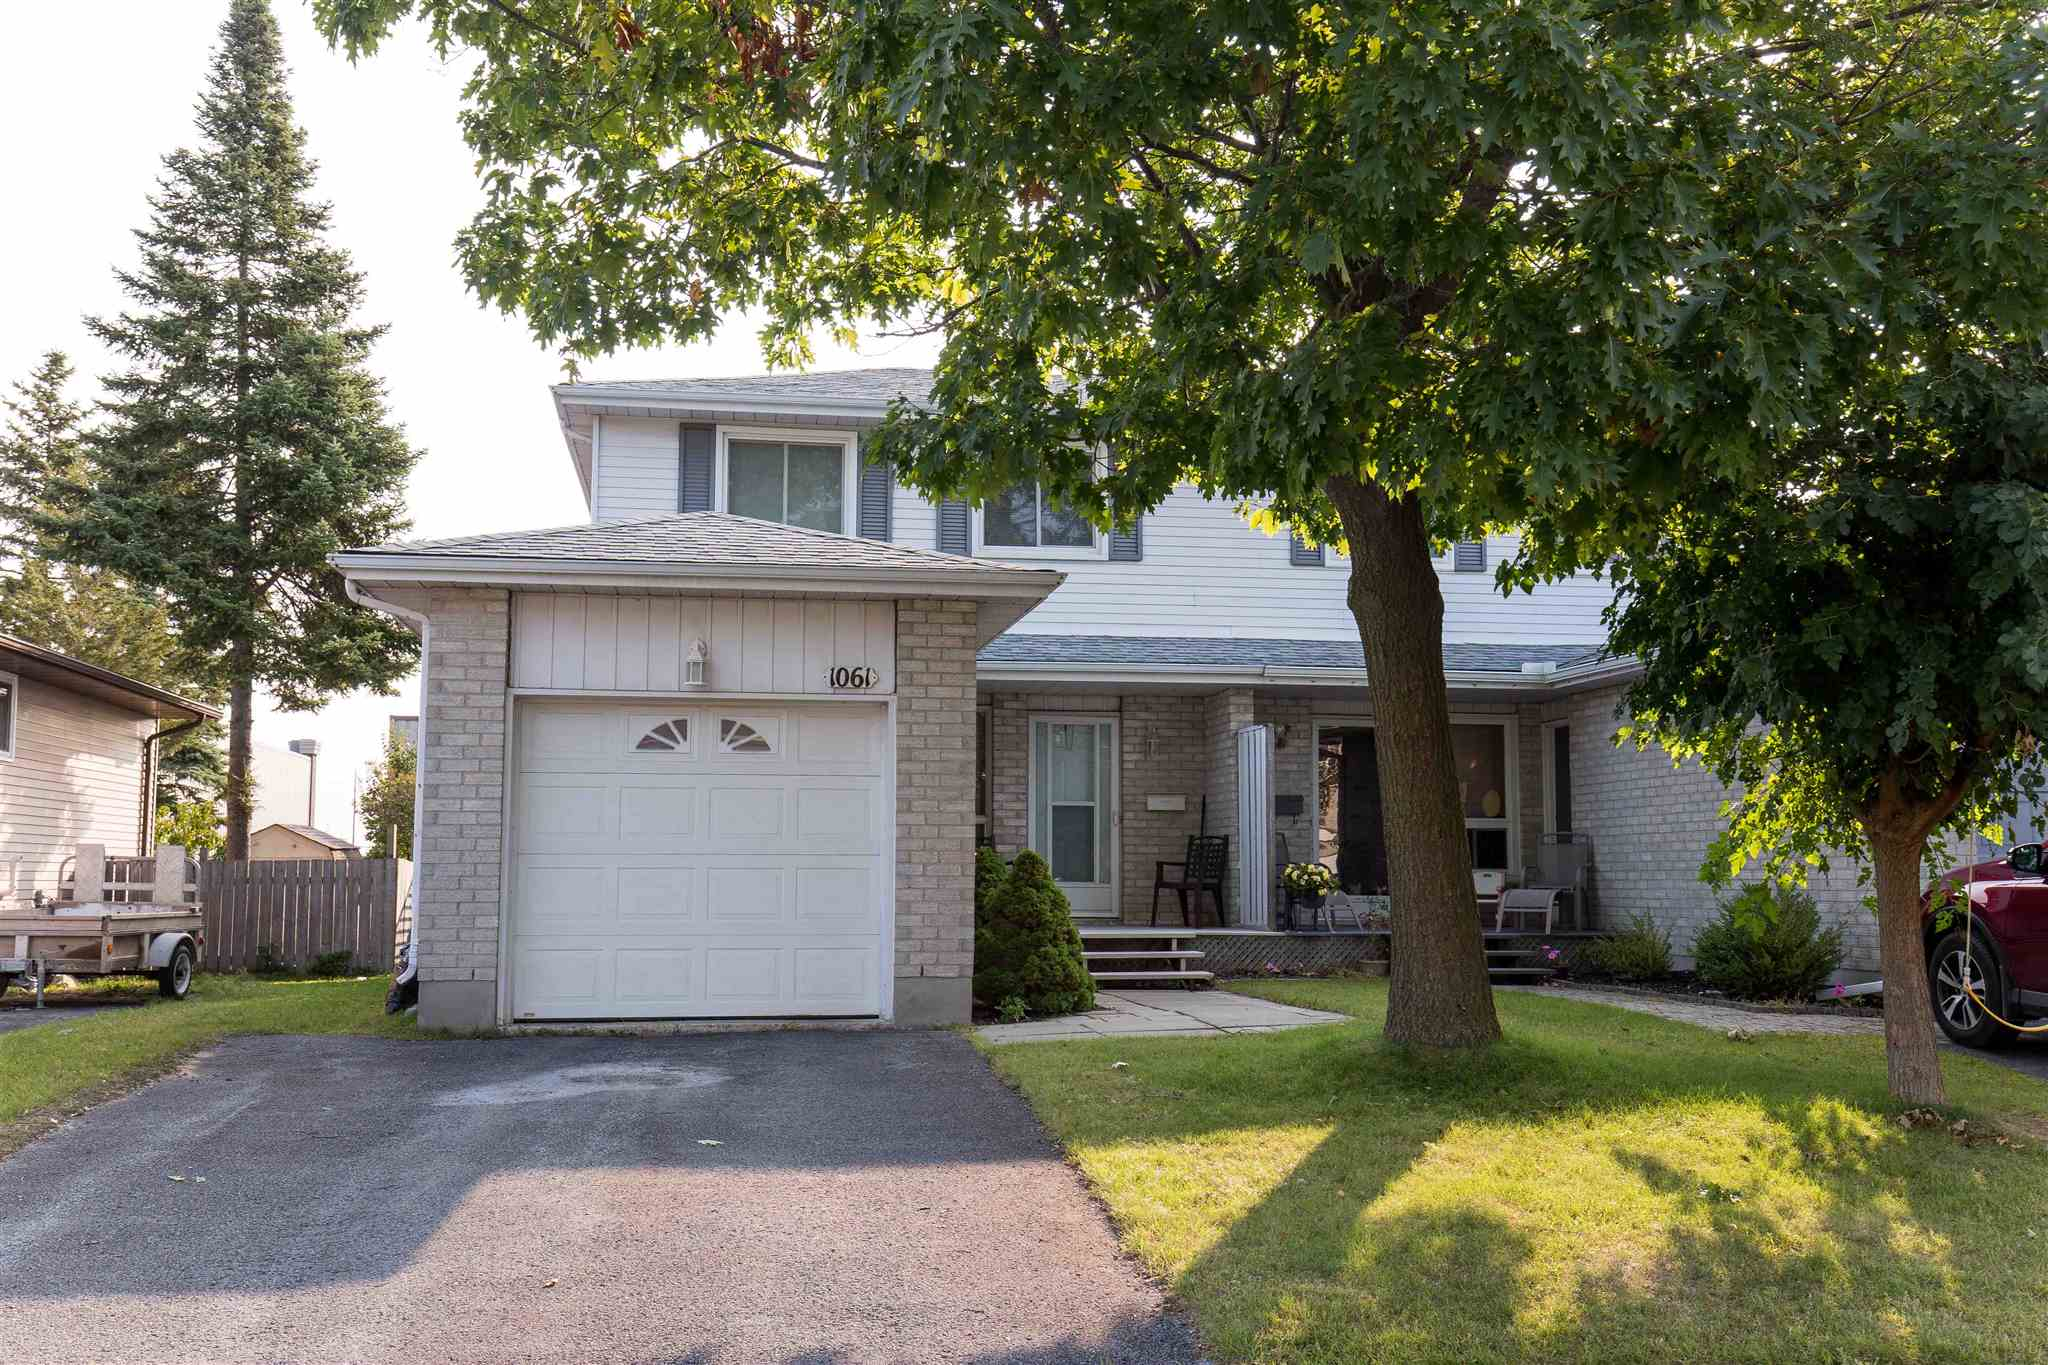 1061 Hickorywood Crescent, Kingston, Ontario, Canada